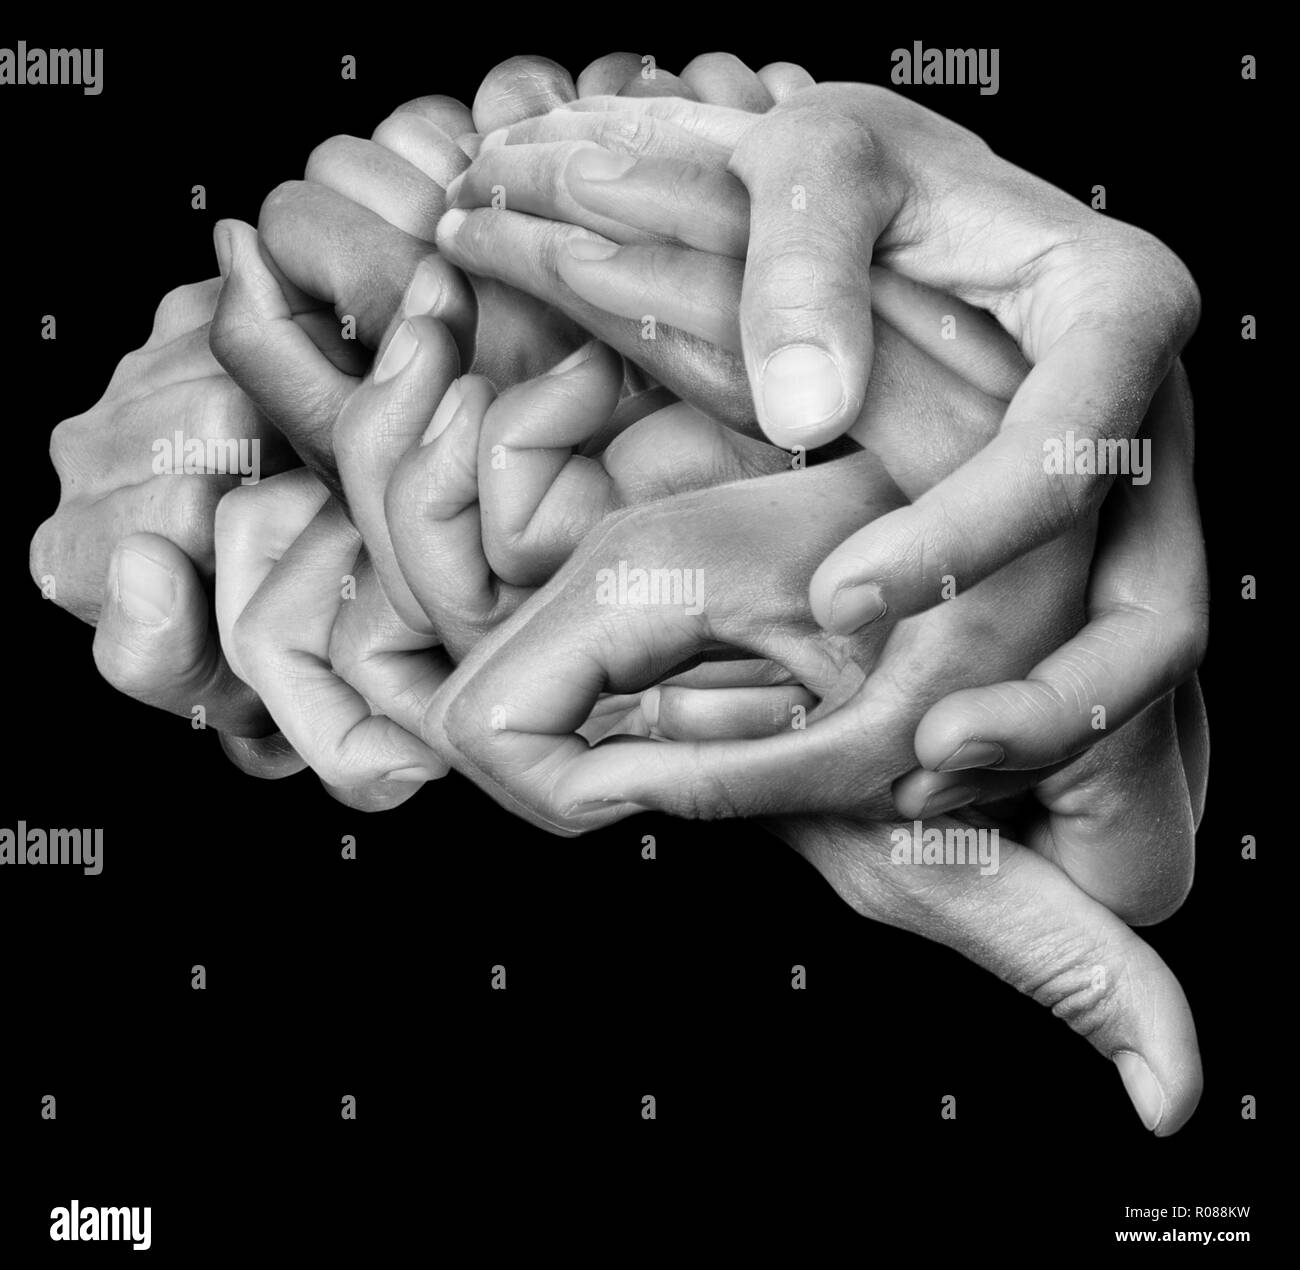 A human brain made with hands, different hands are wrapped together to form a brain. Black background. - Stock Image